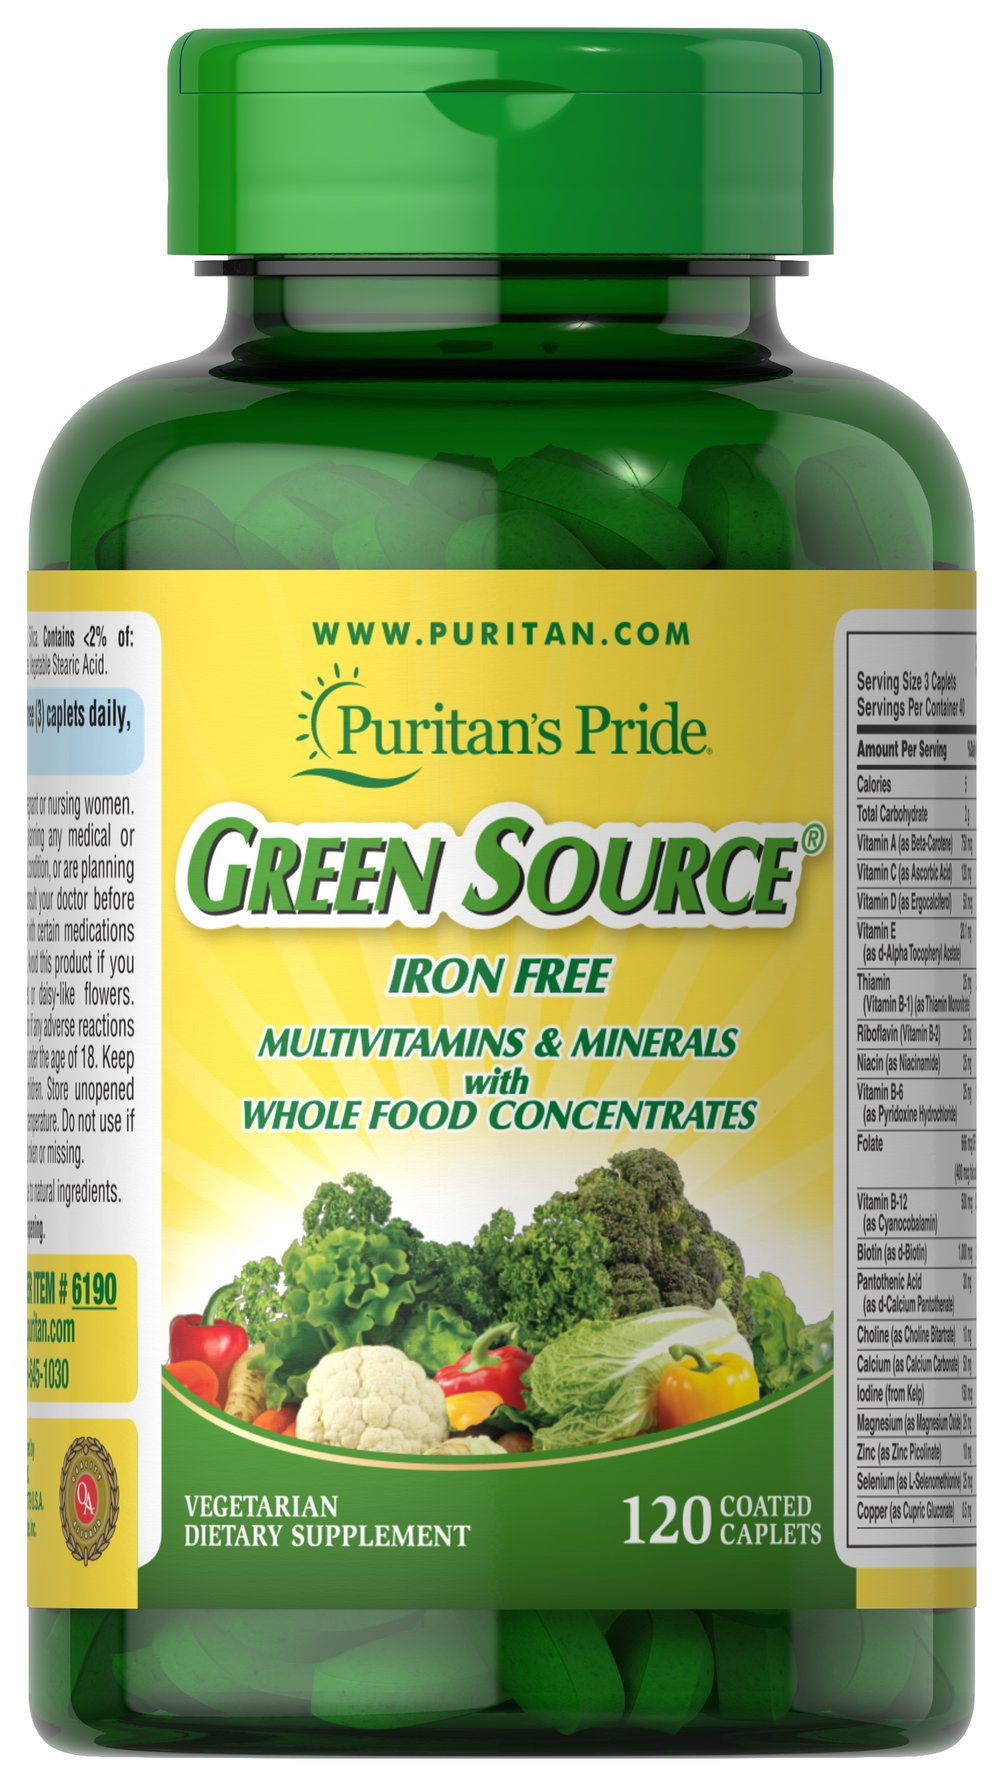 Green Source® Iron Free Multivitamin & Minerals <p>This concentrated formula is Iron Free and contains potent food source nutrients to provide essential vitamins, minerals, enzymes and amino acids. It also provides all the naturally occurring active constituents of whole foods. </p> 120 Caplets  $29.69